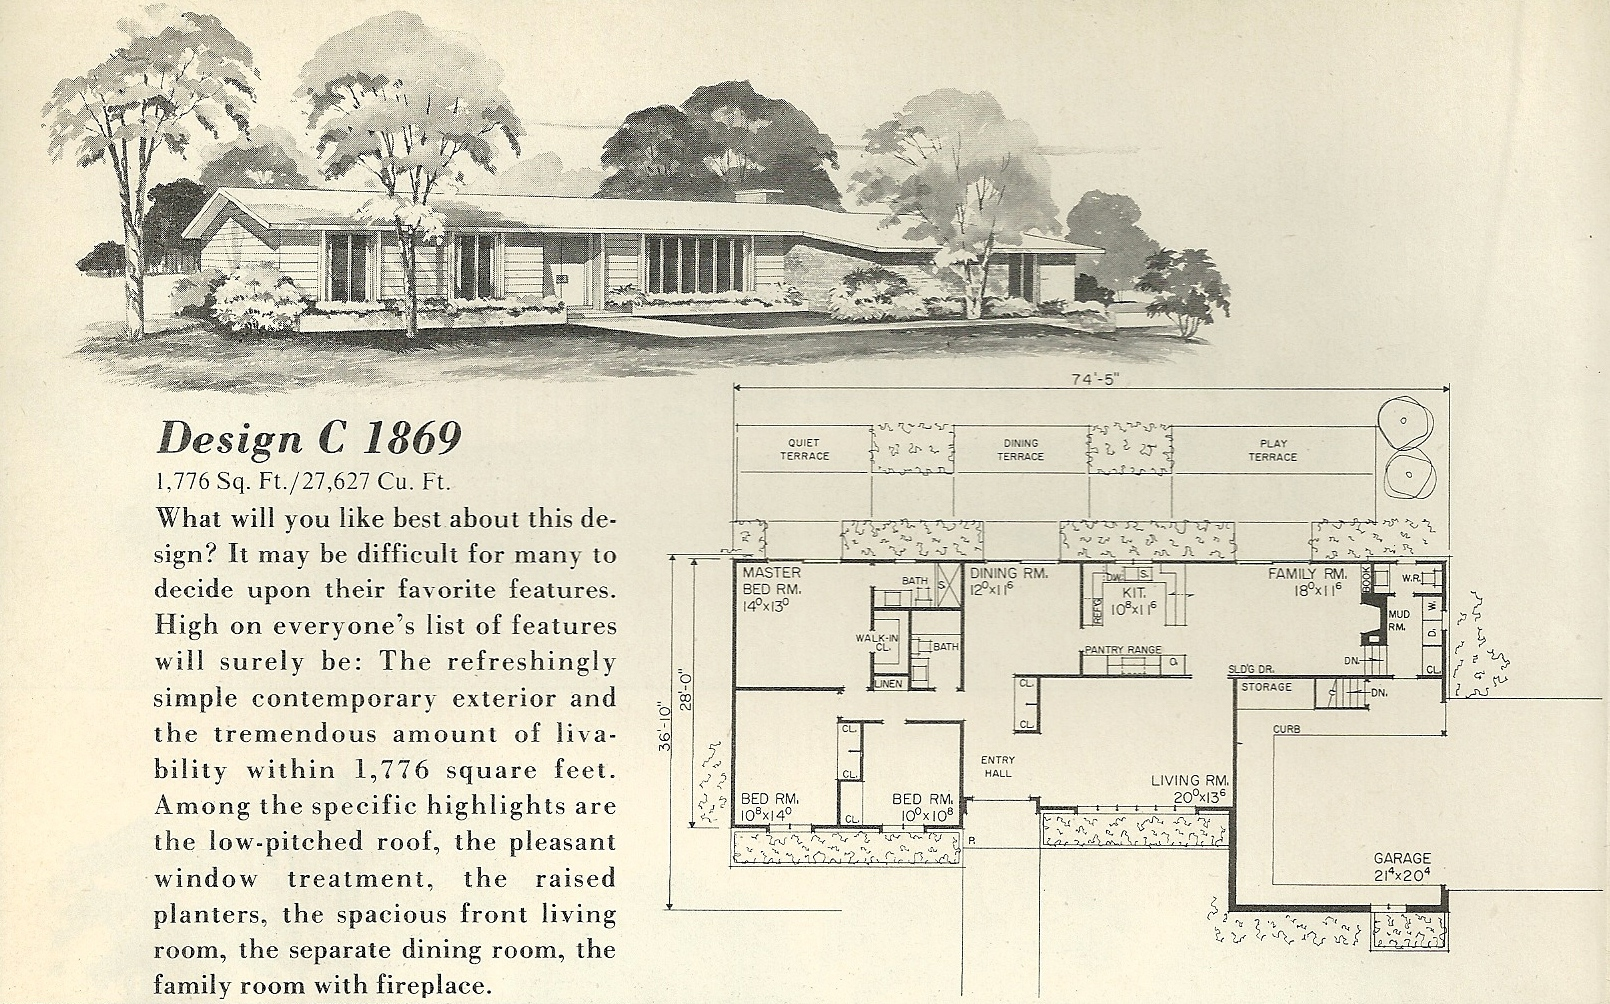 Vintage house plans 1869 antique alter ego for Mid century ranch home plans